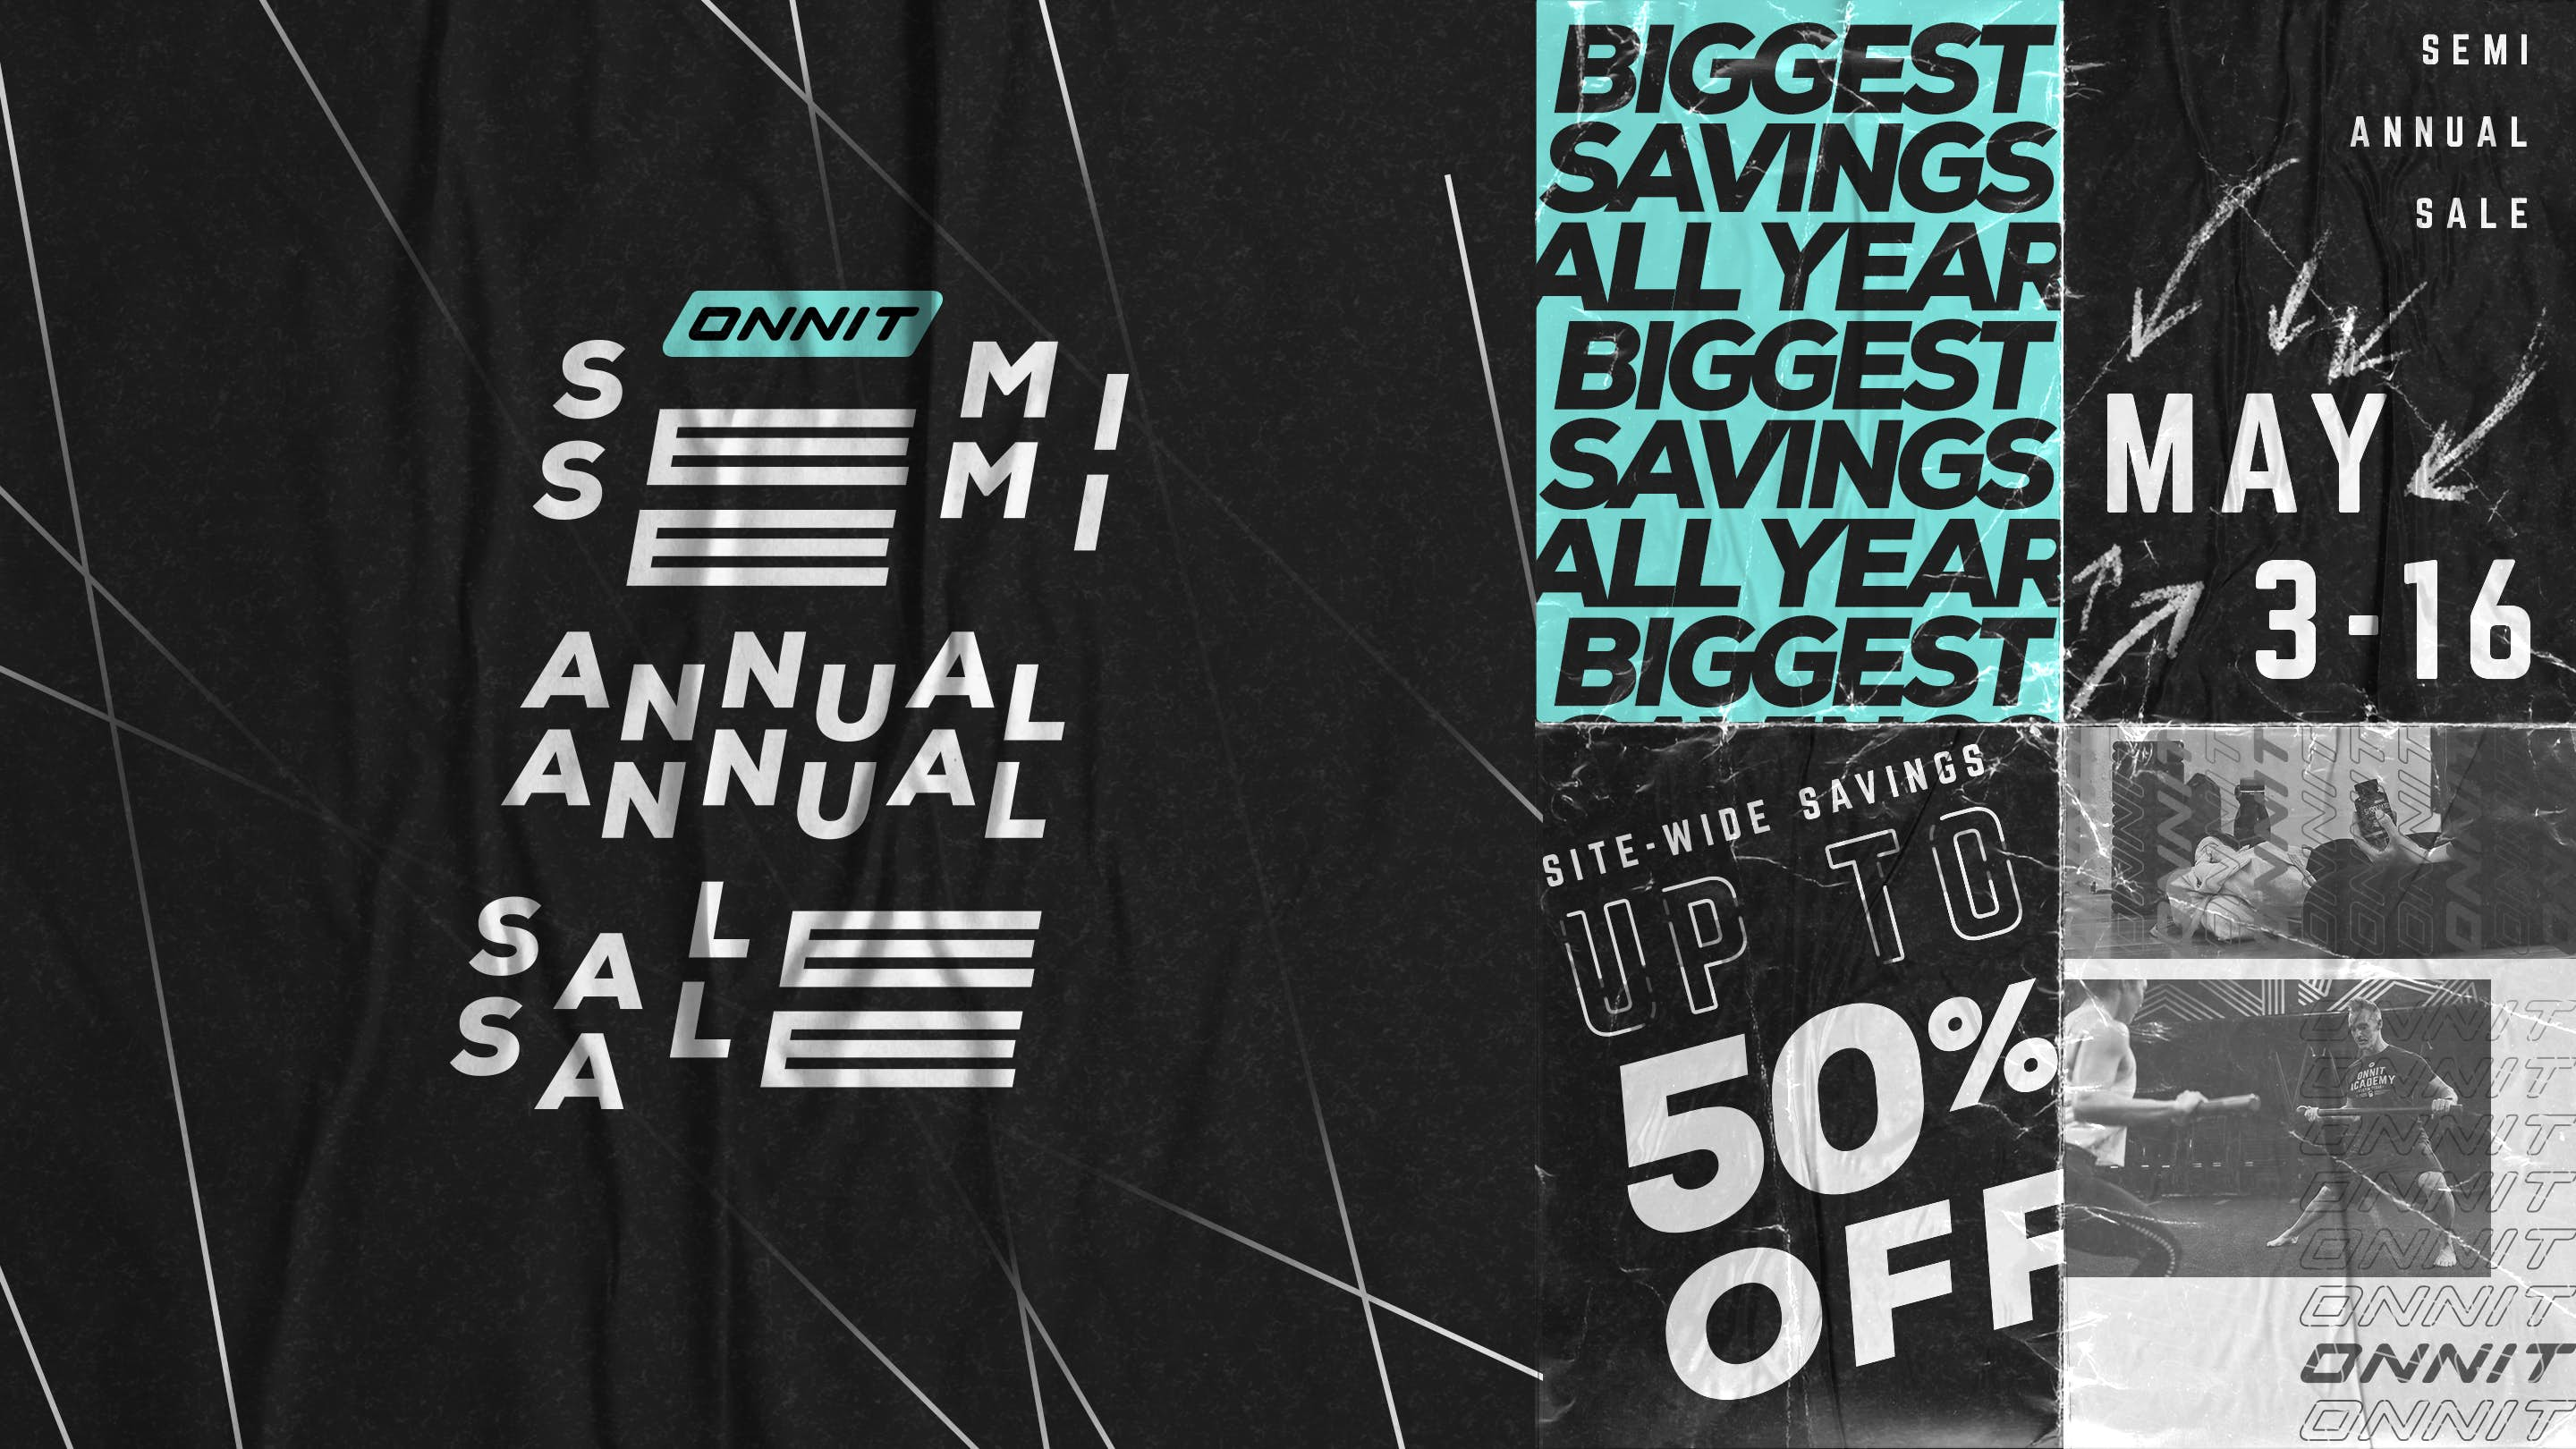 Onnit Coupons